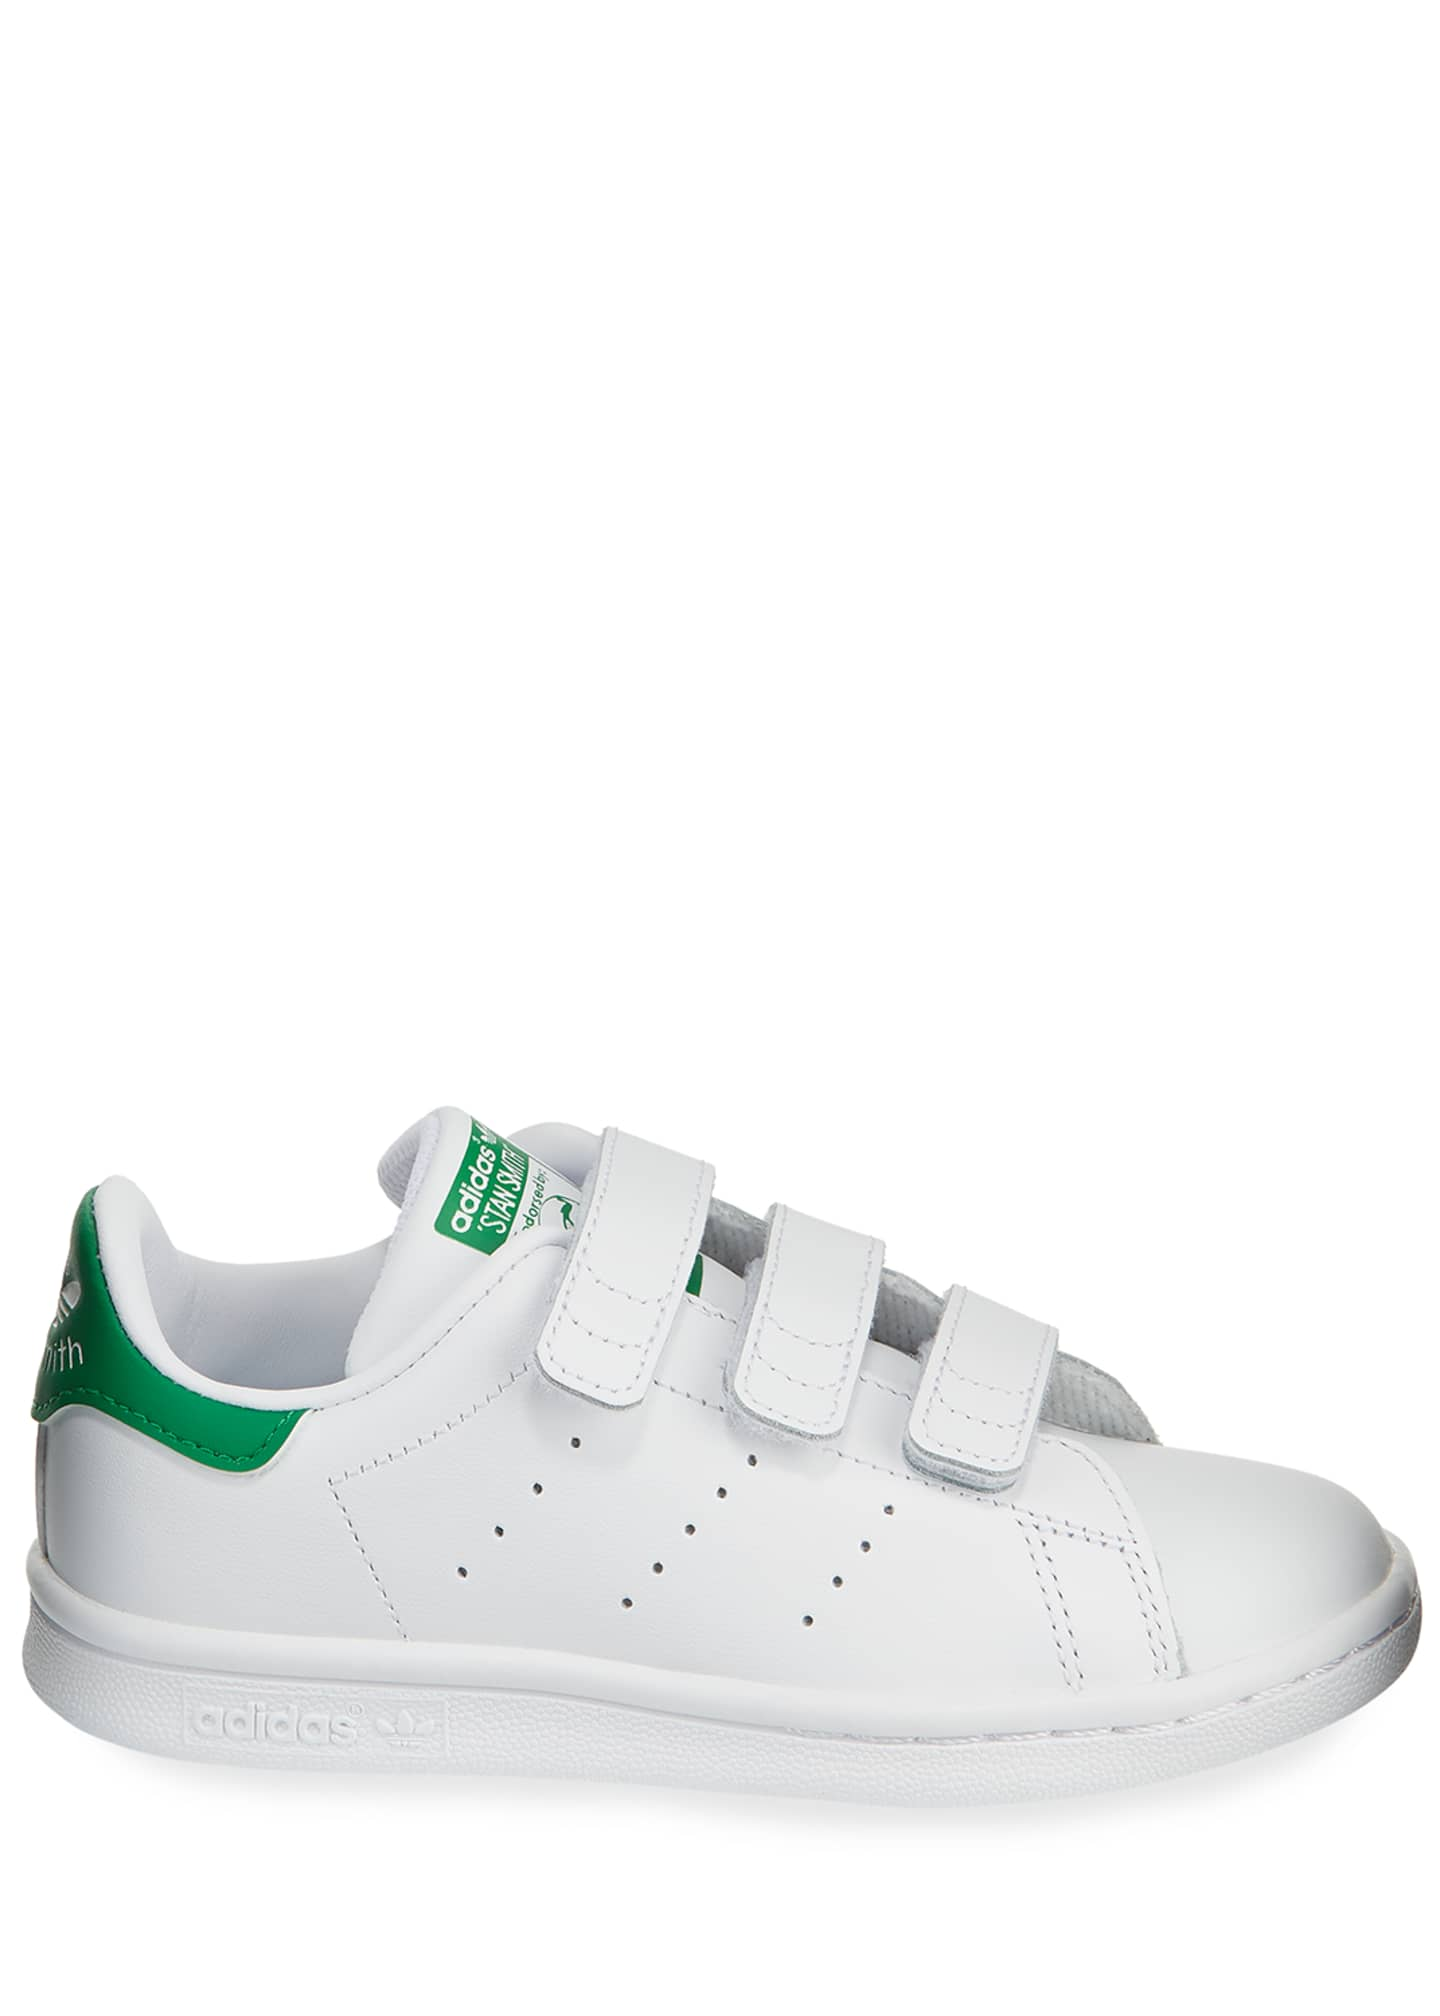 Image 2 of 4: Stan Smith Sneakers, Toddlers/Kids